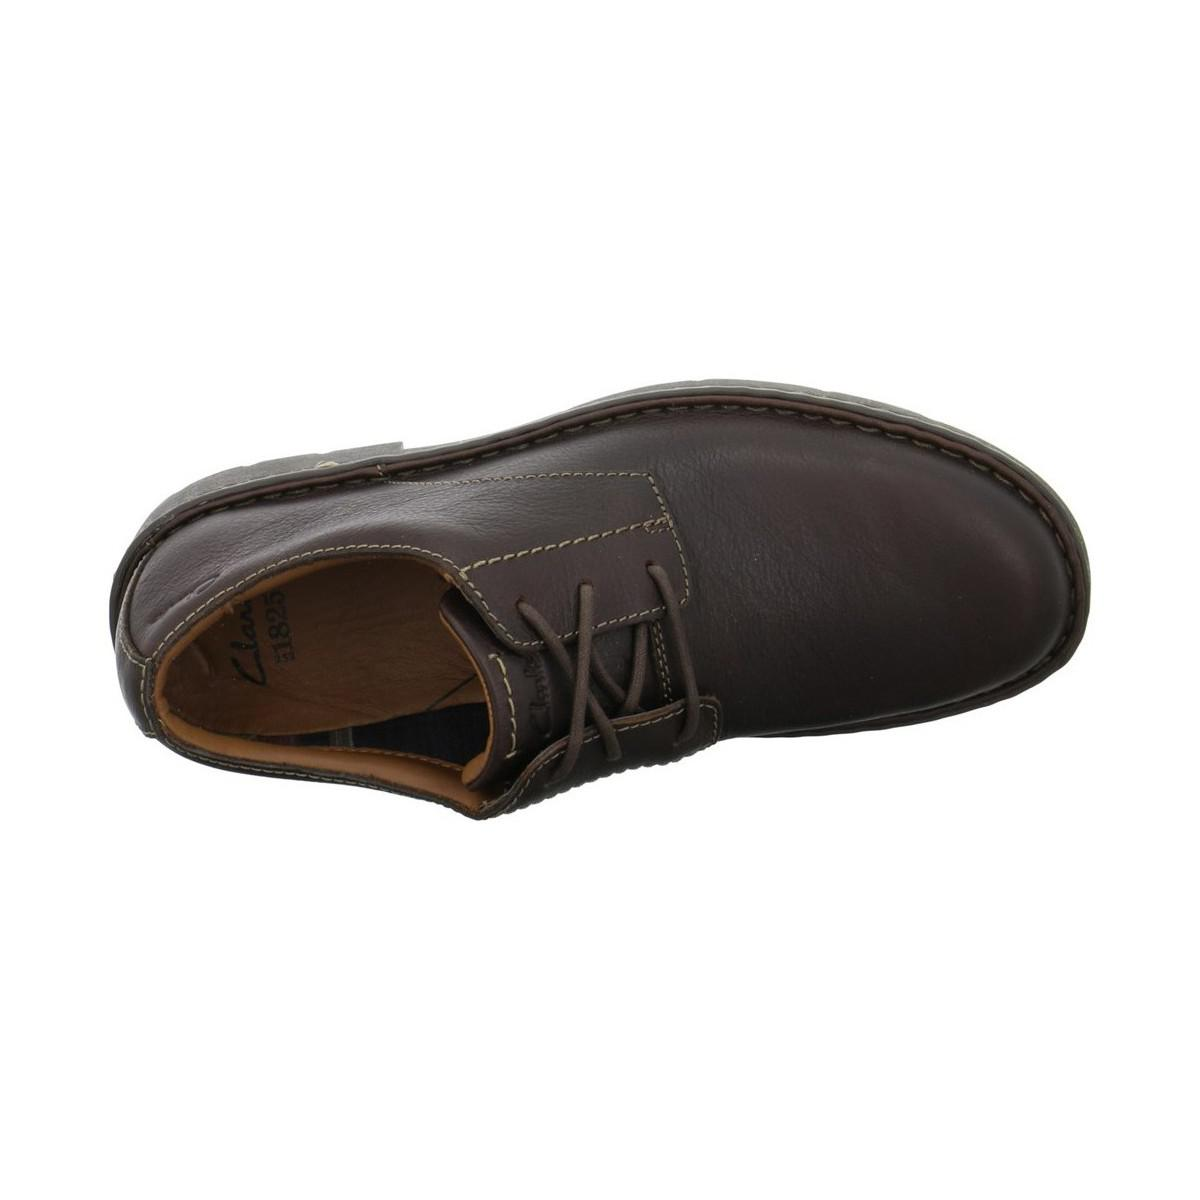 Clarks Stratton Way Men's Casual Shoes In Brown for Men